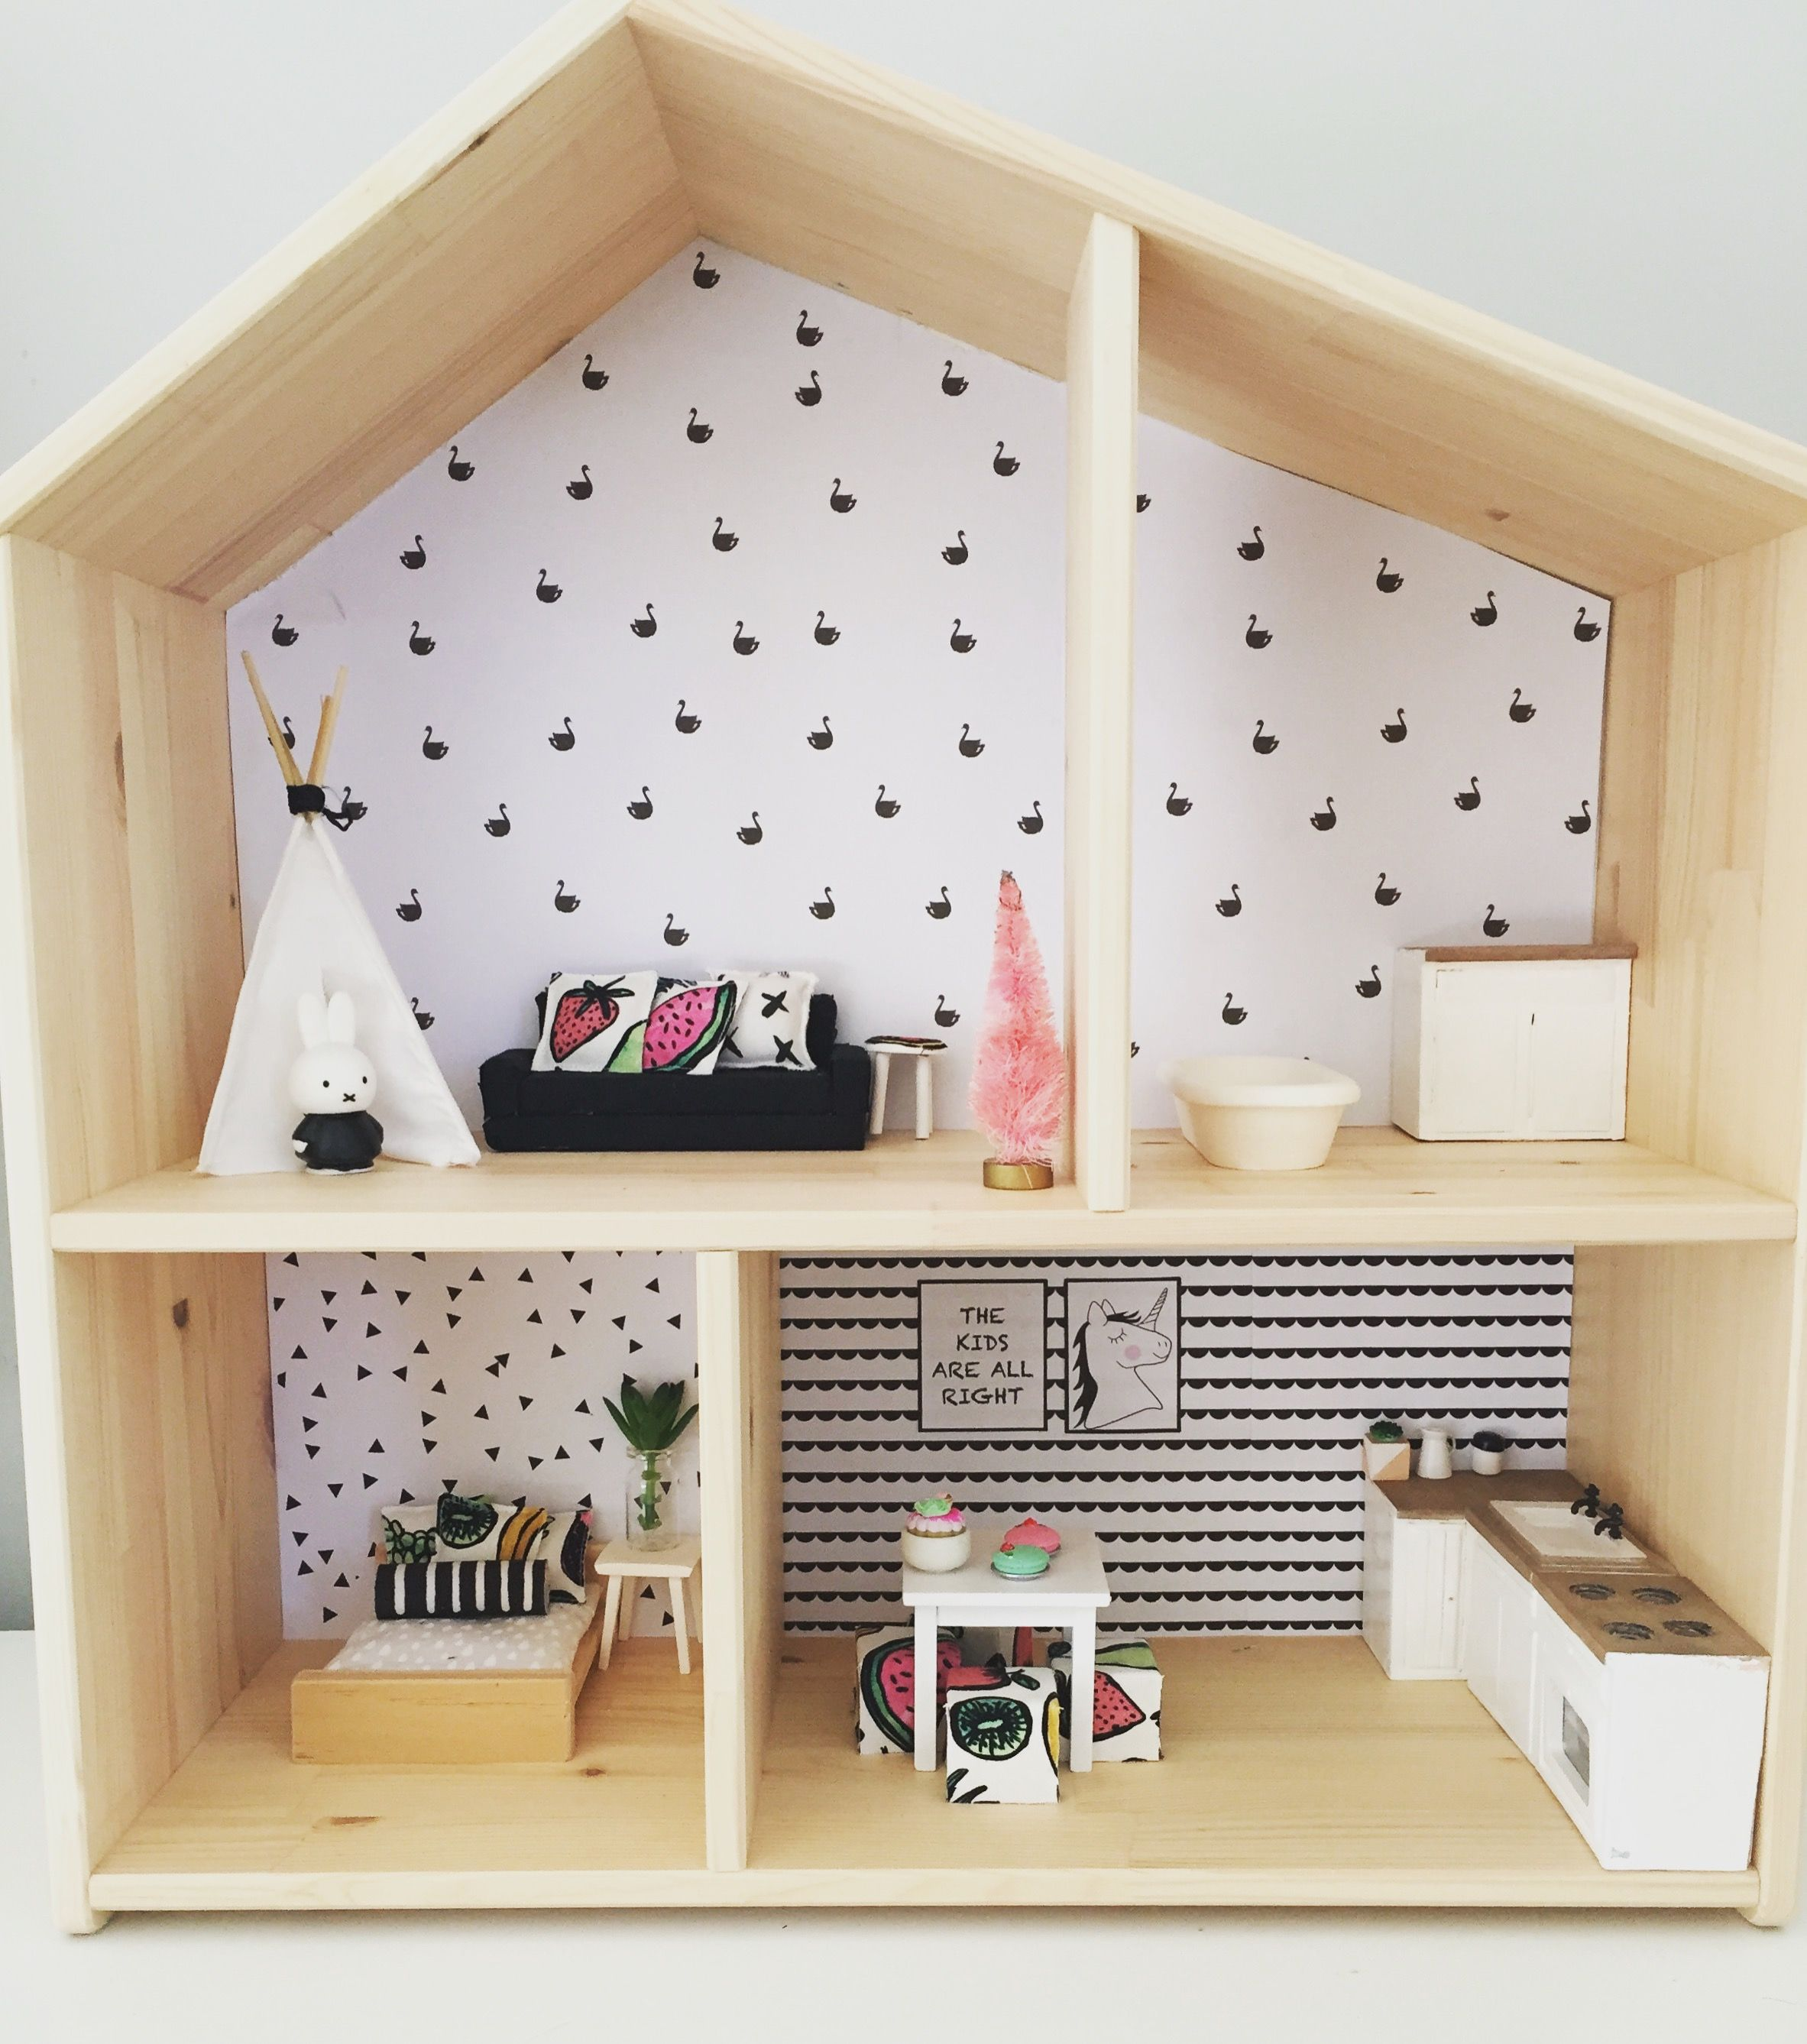 Ikea Flisat Hack Modern Dollhouse Renovation 1 12 Scale